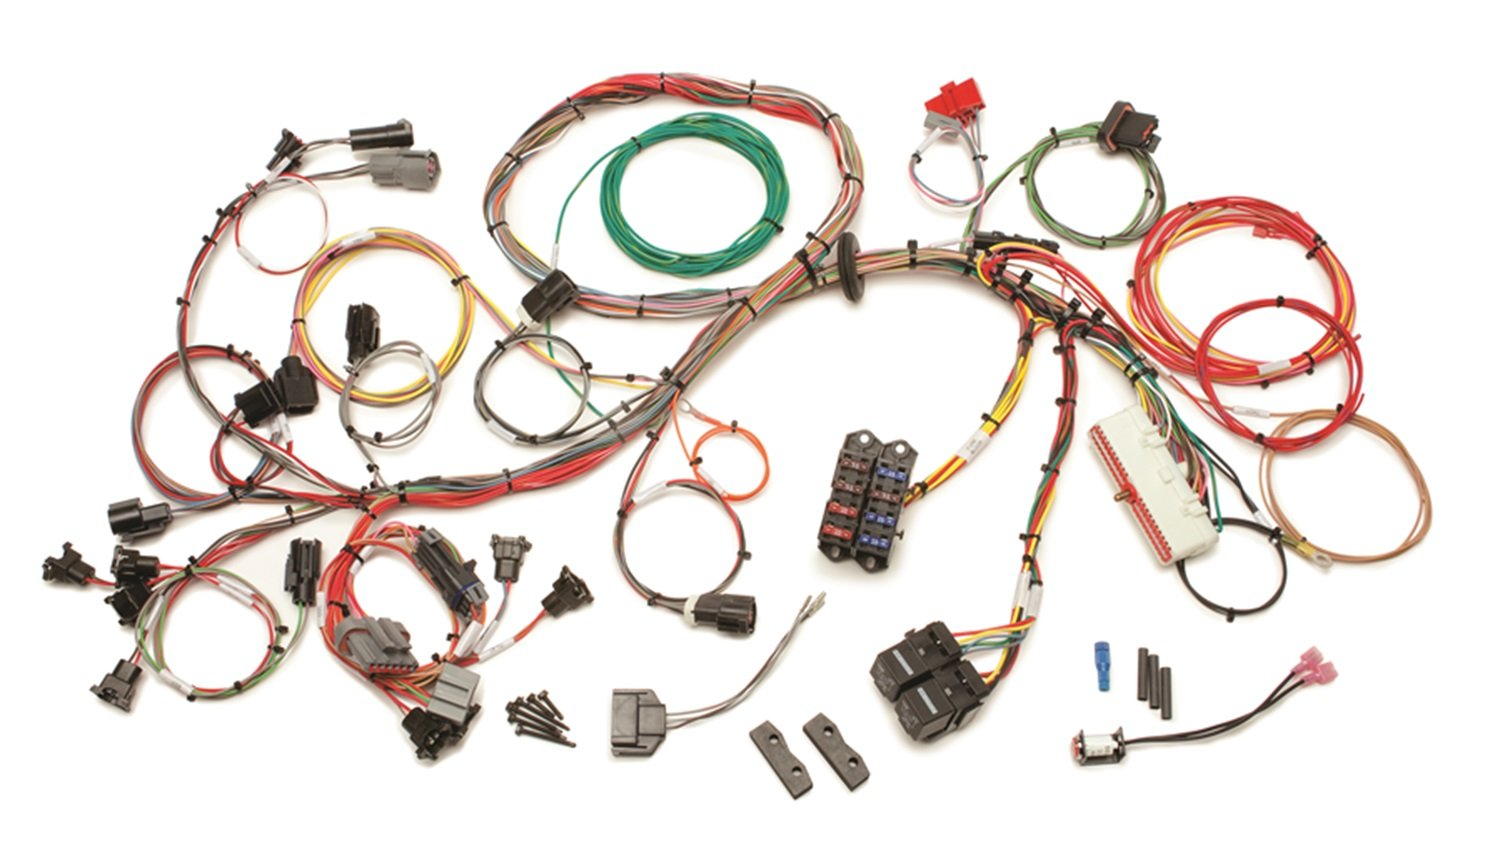 71UX1IBfleL._SL1500_ amazon com painless 60510 5 0l wiring harness automotive ford wiring harness at n-0.co